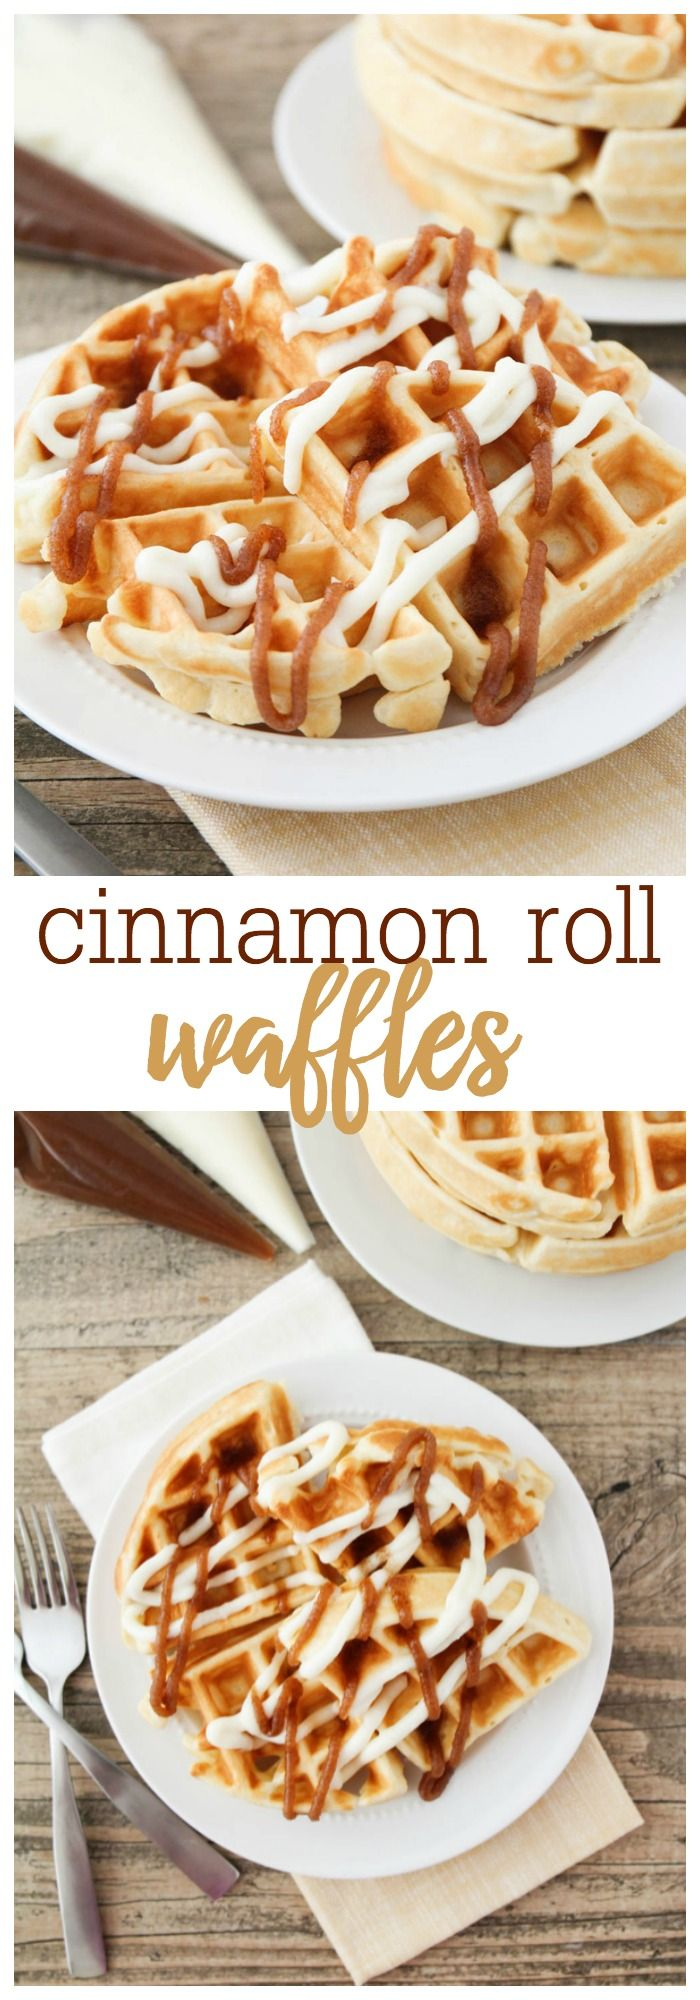 Cinnamon Roll Waffles - crisp, buttery, tender waffles, topped with an amazing combination of sweetened cream cheese and a cinnamon brown sugar topping. Each bite tastes just like a homemade cinnamon roll, but they're so much faster and easier to make!